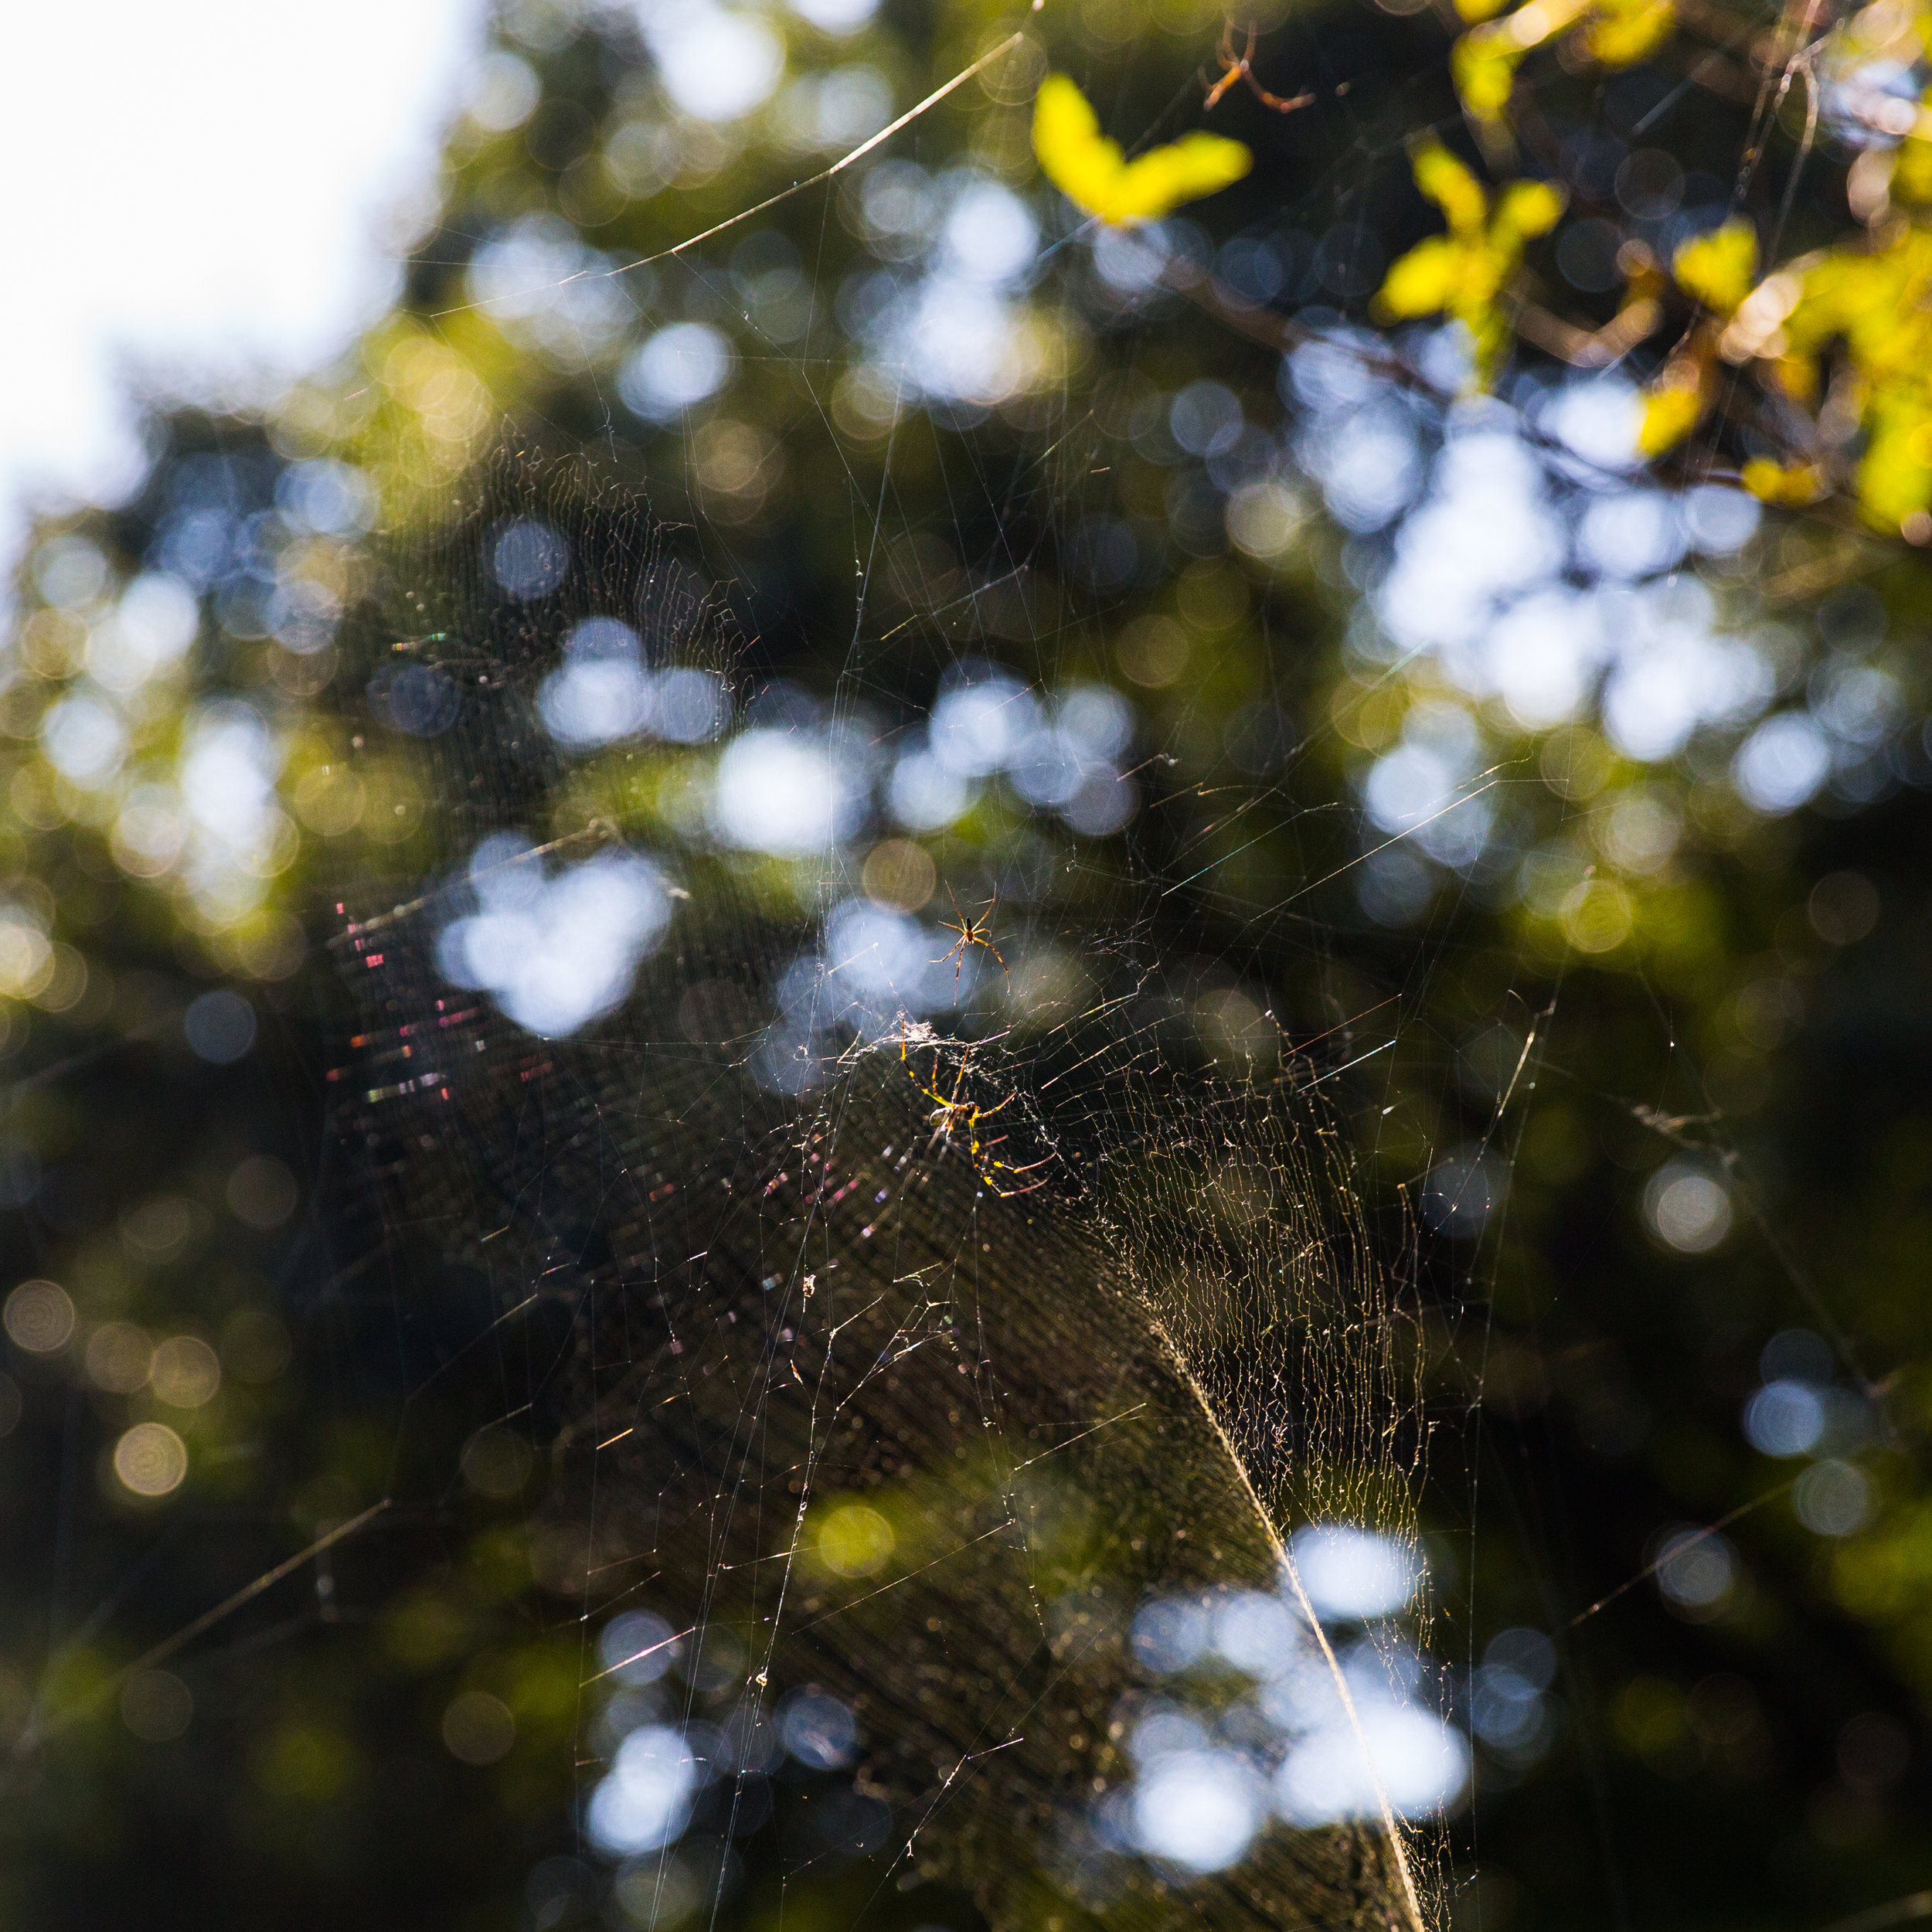 A family of spiders watches over the pond.